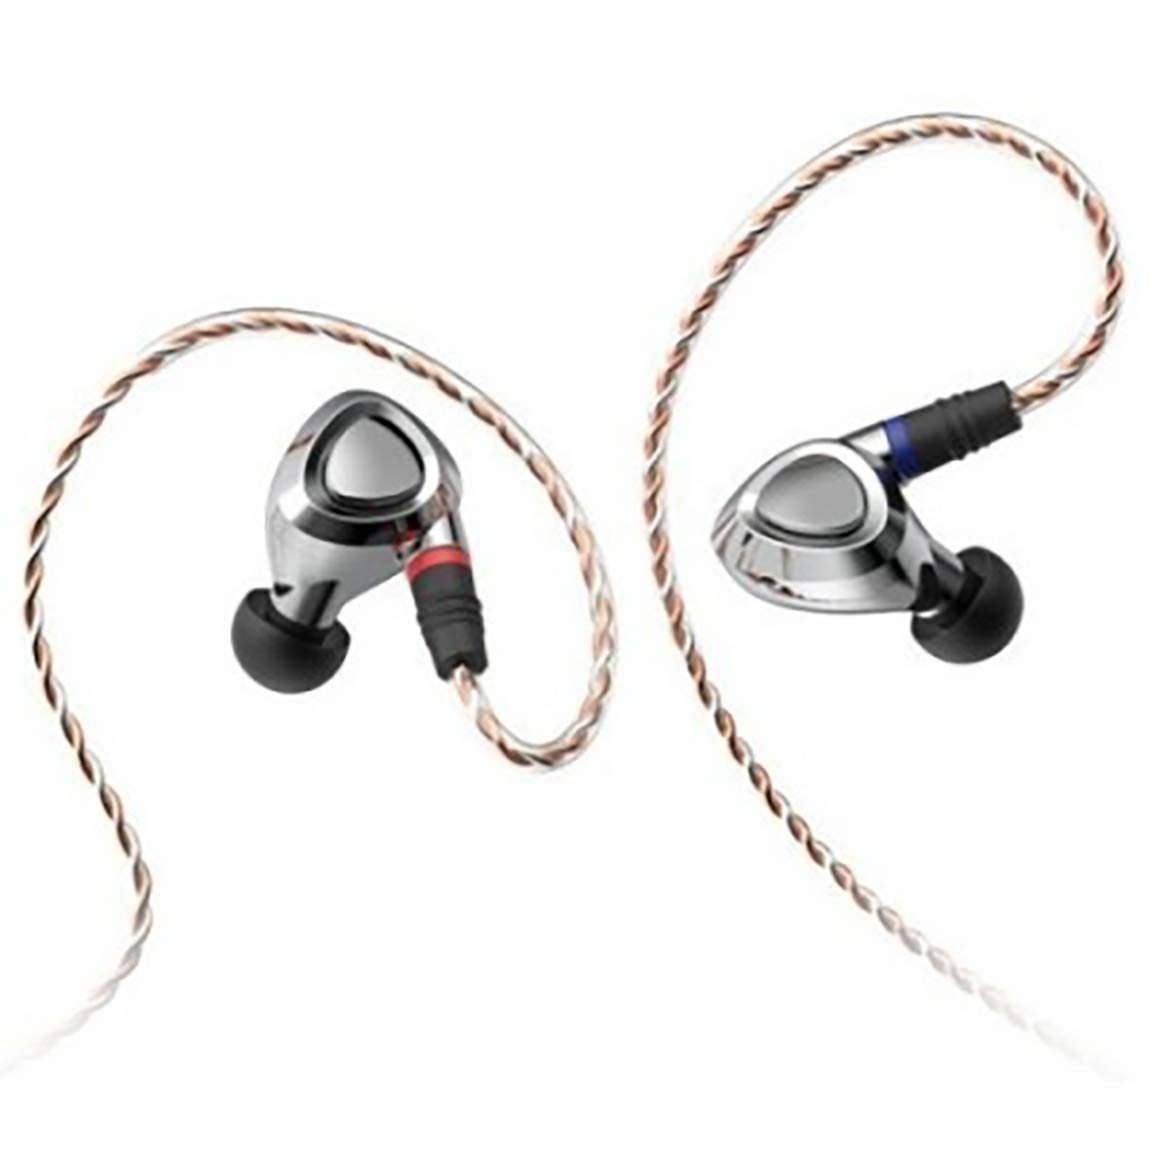 Shanling ME500 Hybrid Triple Driver In-Ear Monitor